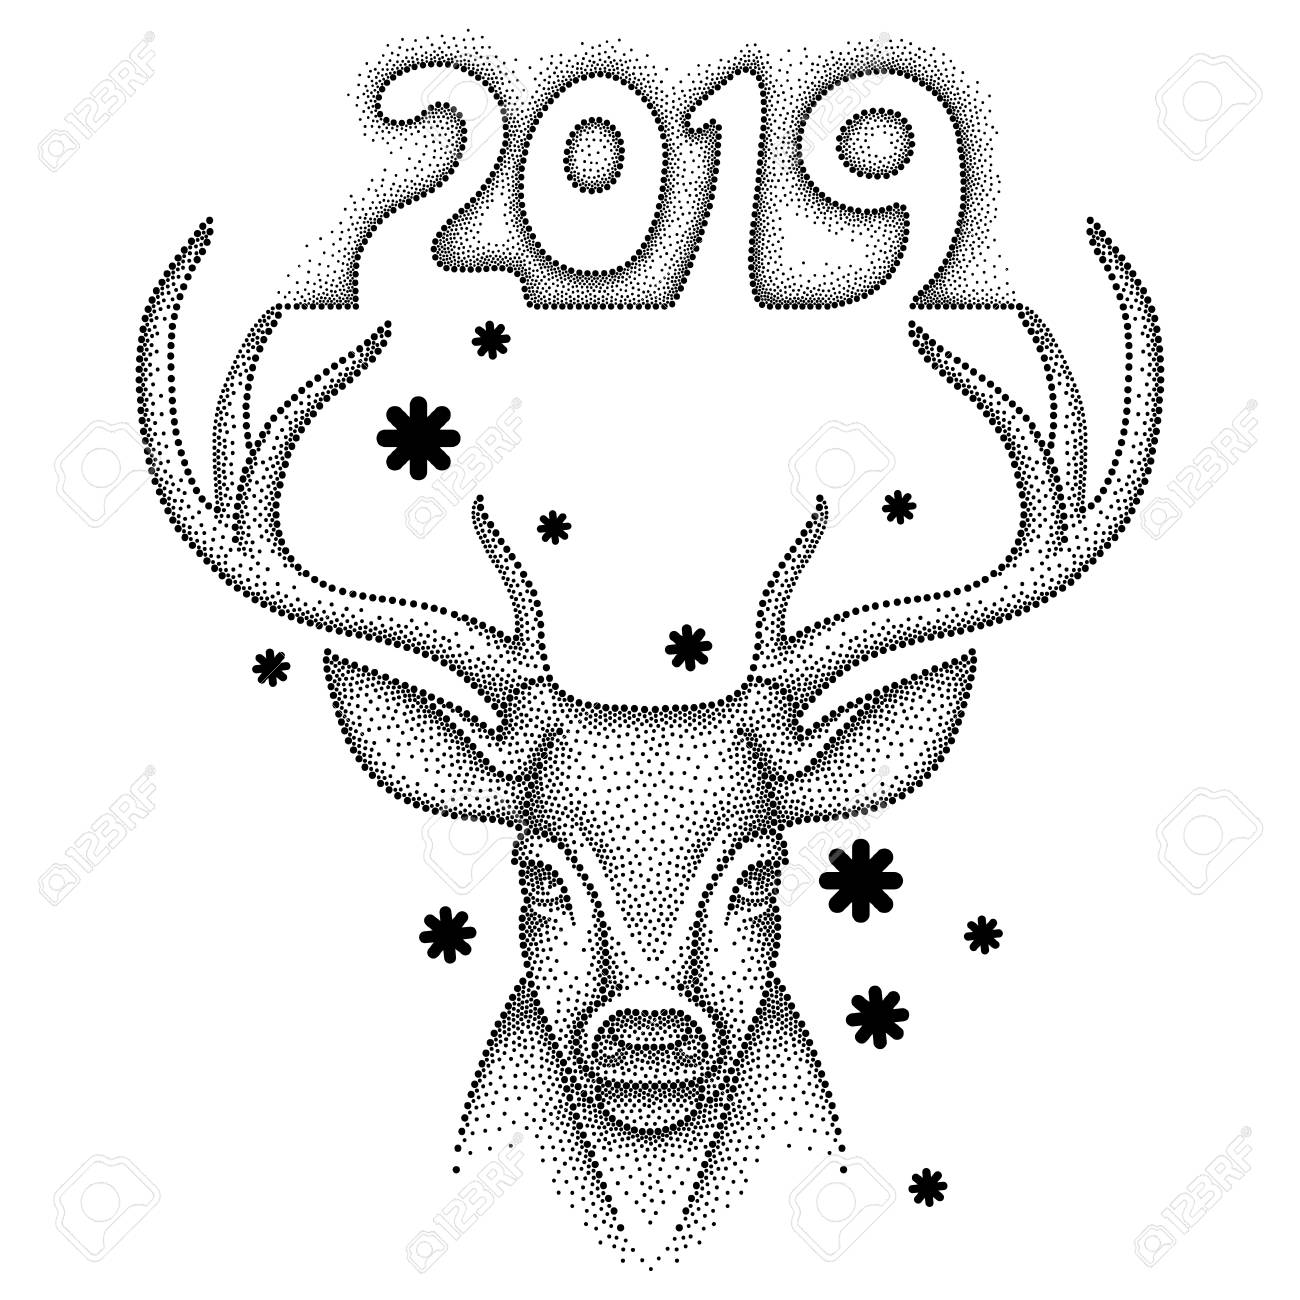 Drawing With Deer Number 2019 Animal In Dotwork Or Pointillism